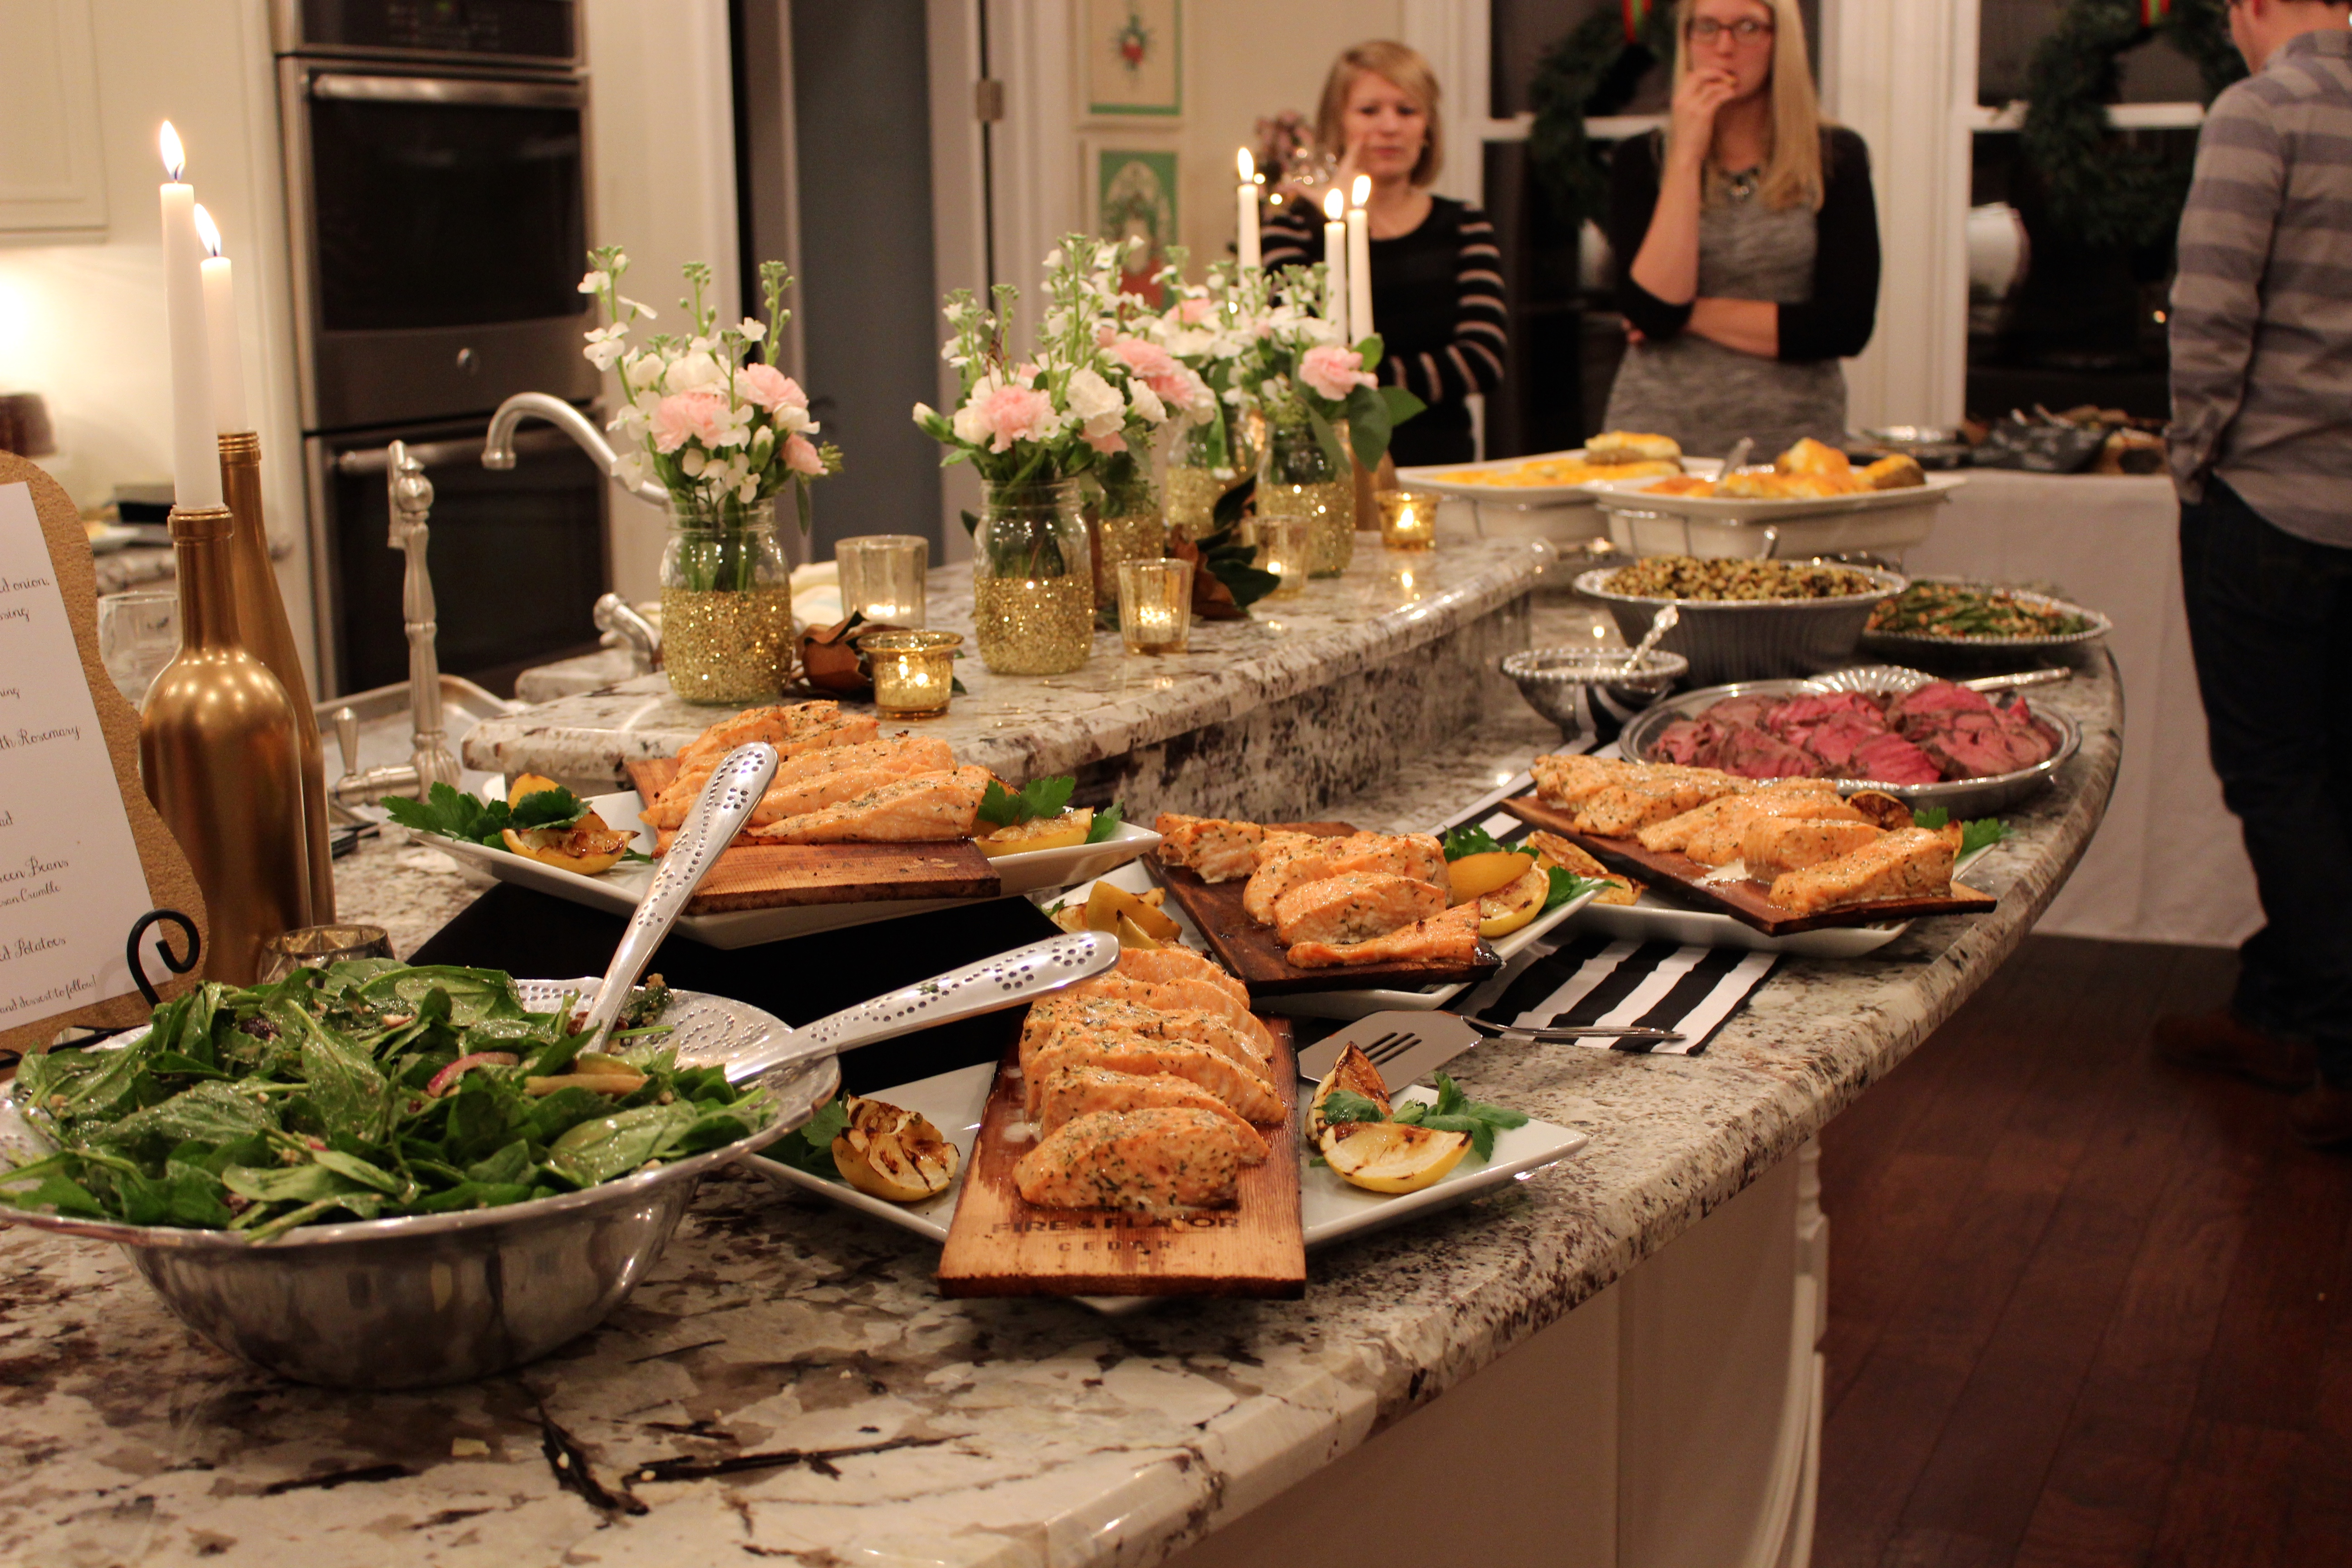 Dinner Ideas For A Birthday Party Part - 19: Gold, Black, And White: My 30th Birthday Dinner Party - SevenLayerCharlotte